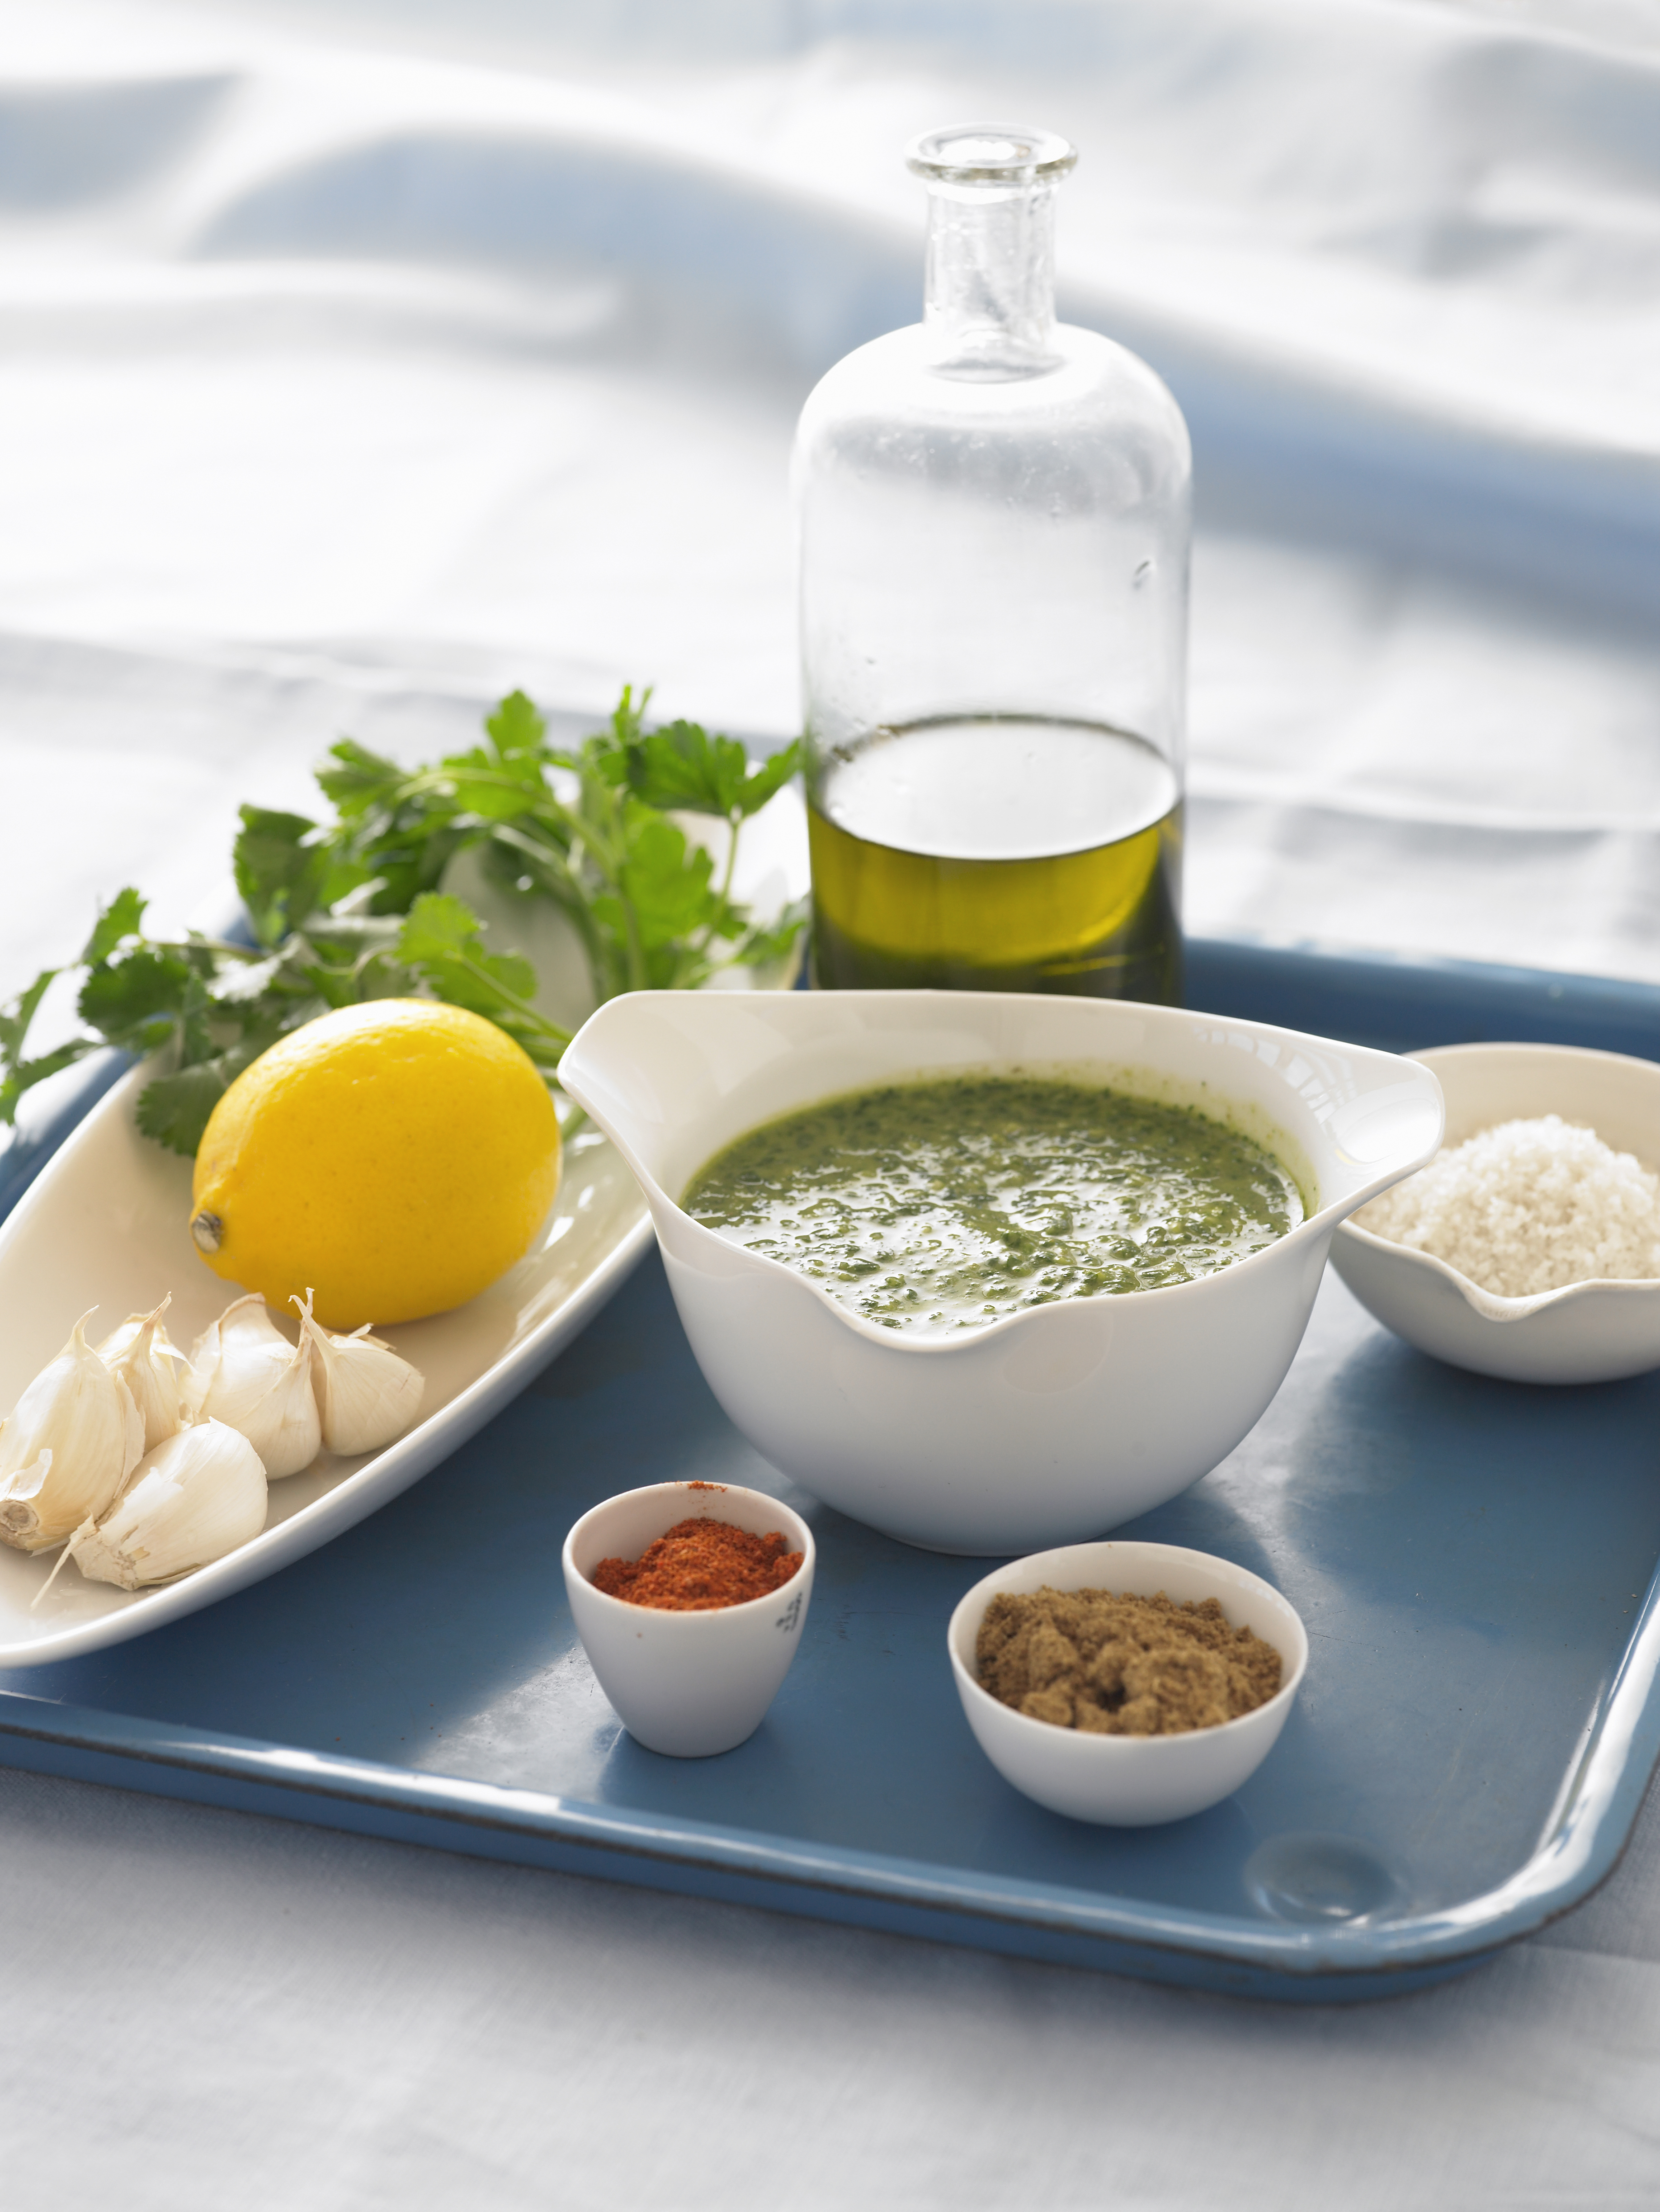 Moroccan Chermoula Sauce with Ingredients